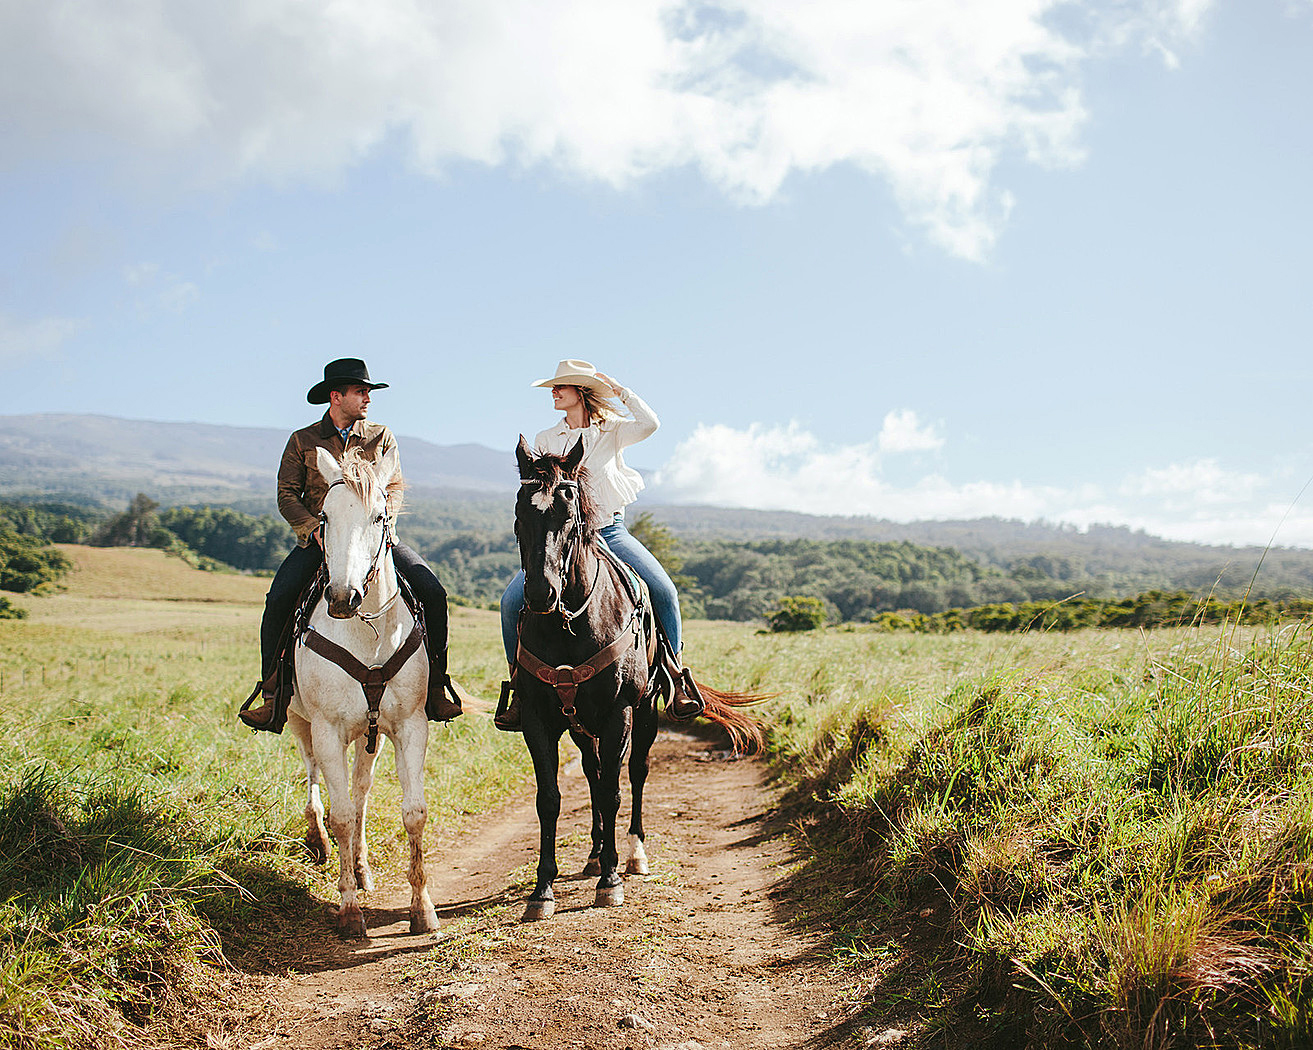 hawaii experiences man and woman horsebackriding